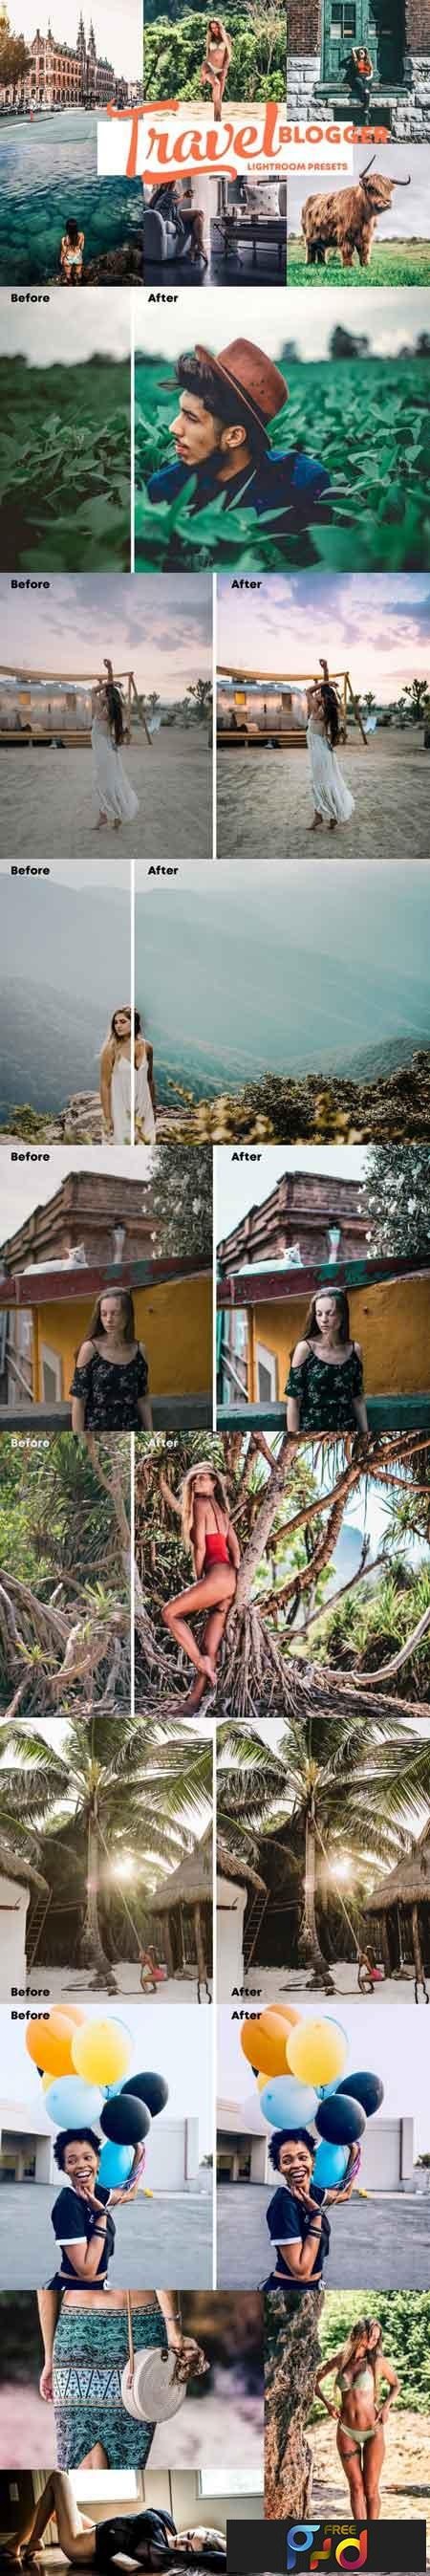 Travel Blogger - Instagram Lightroom Presets 1